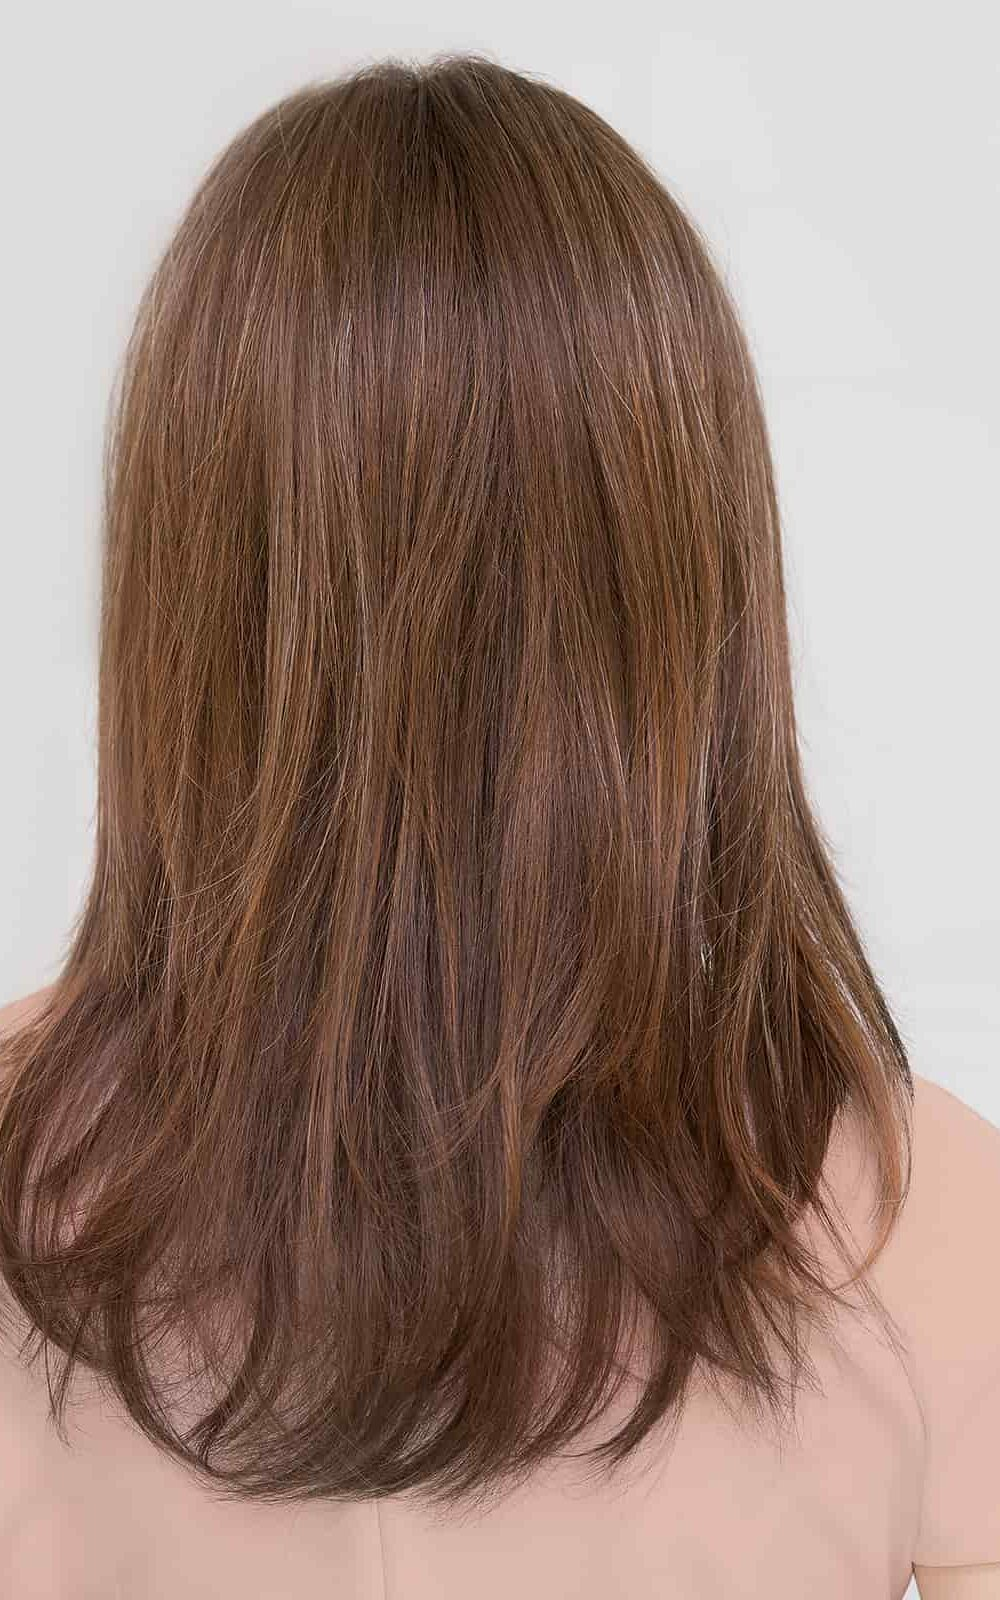 Specially selected materials, which are breathable and soft to ensure maximum comfort at all times. She is lightweight and perfect for those with a sensitive scalp